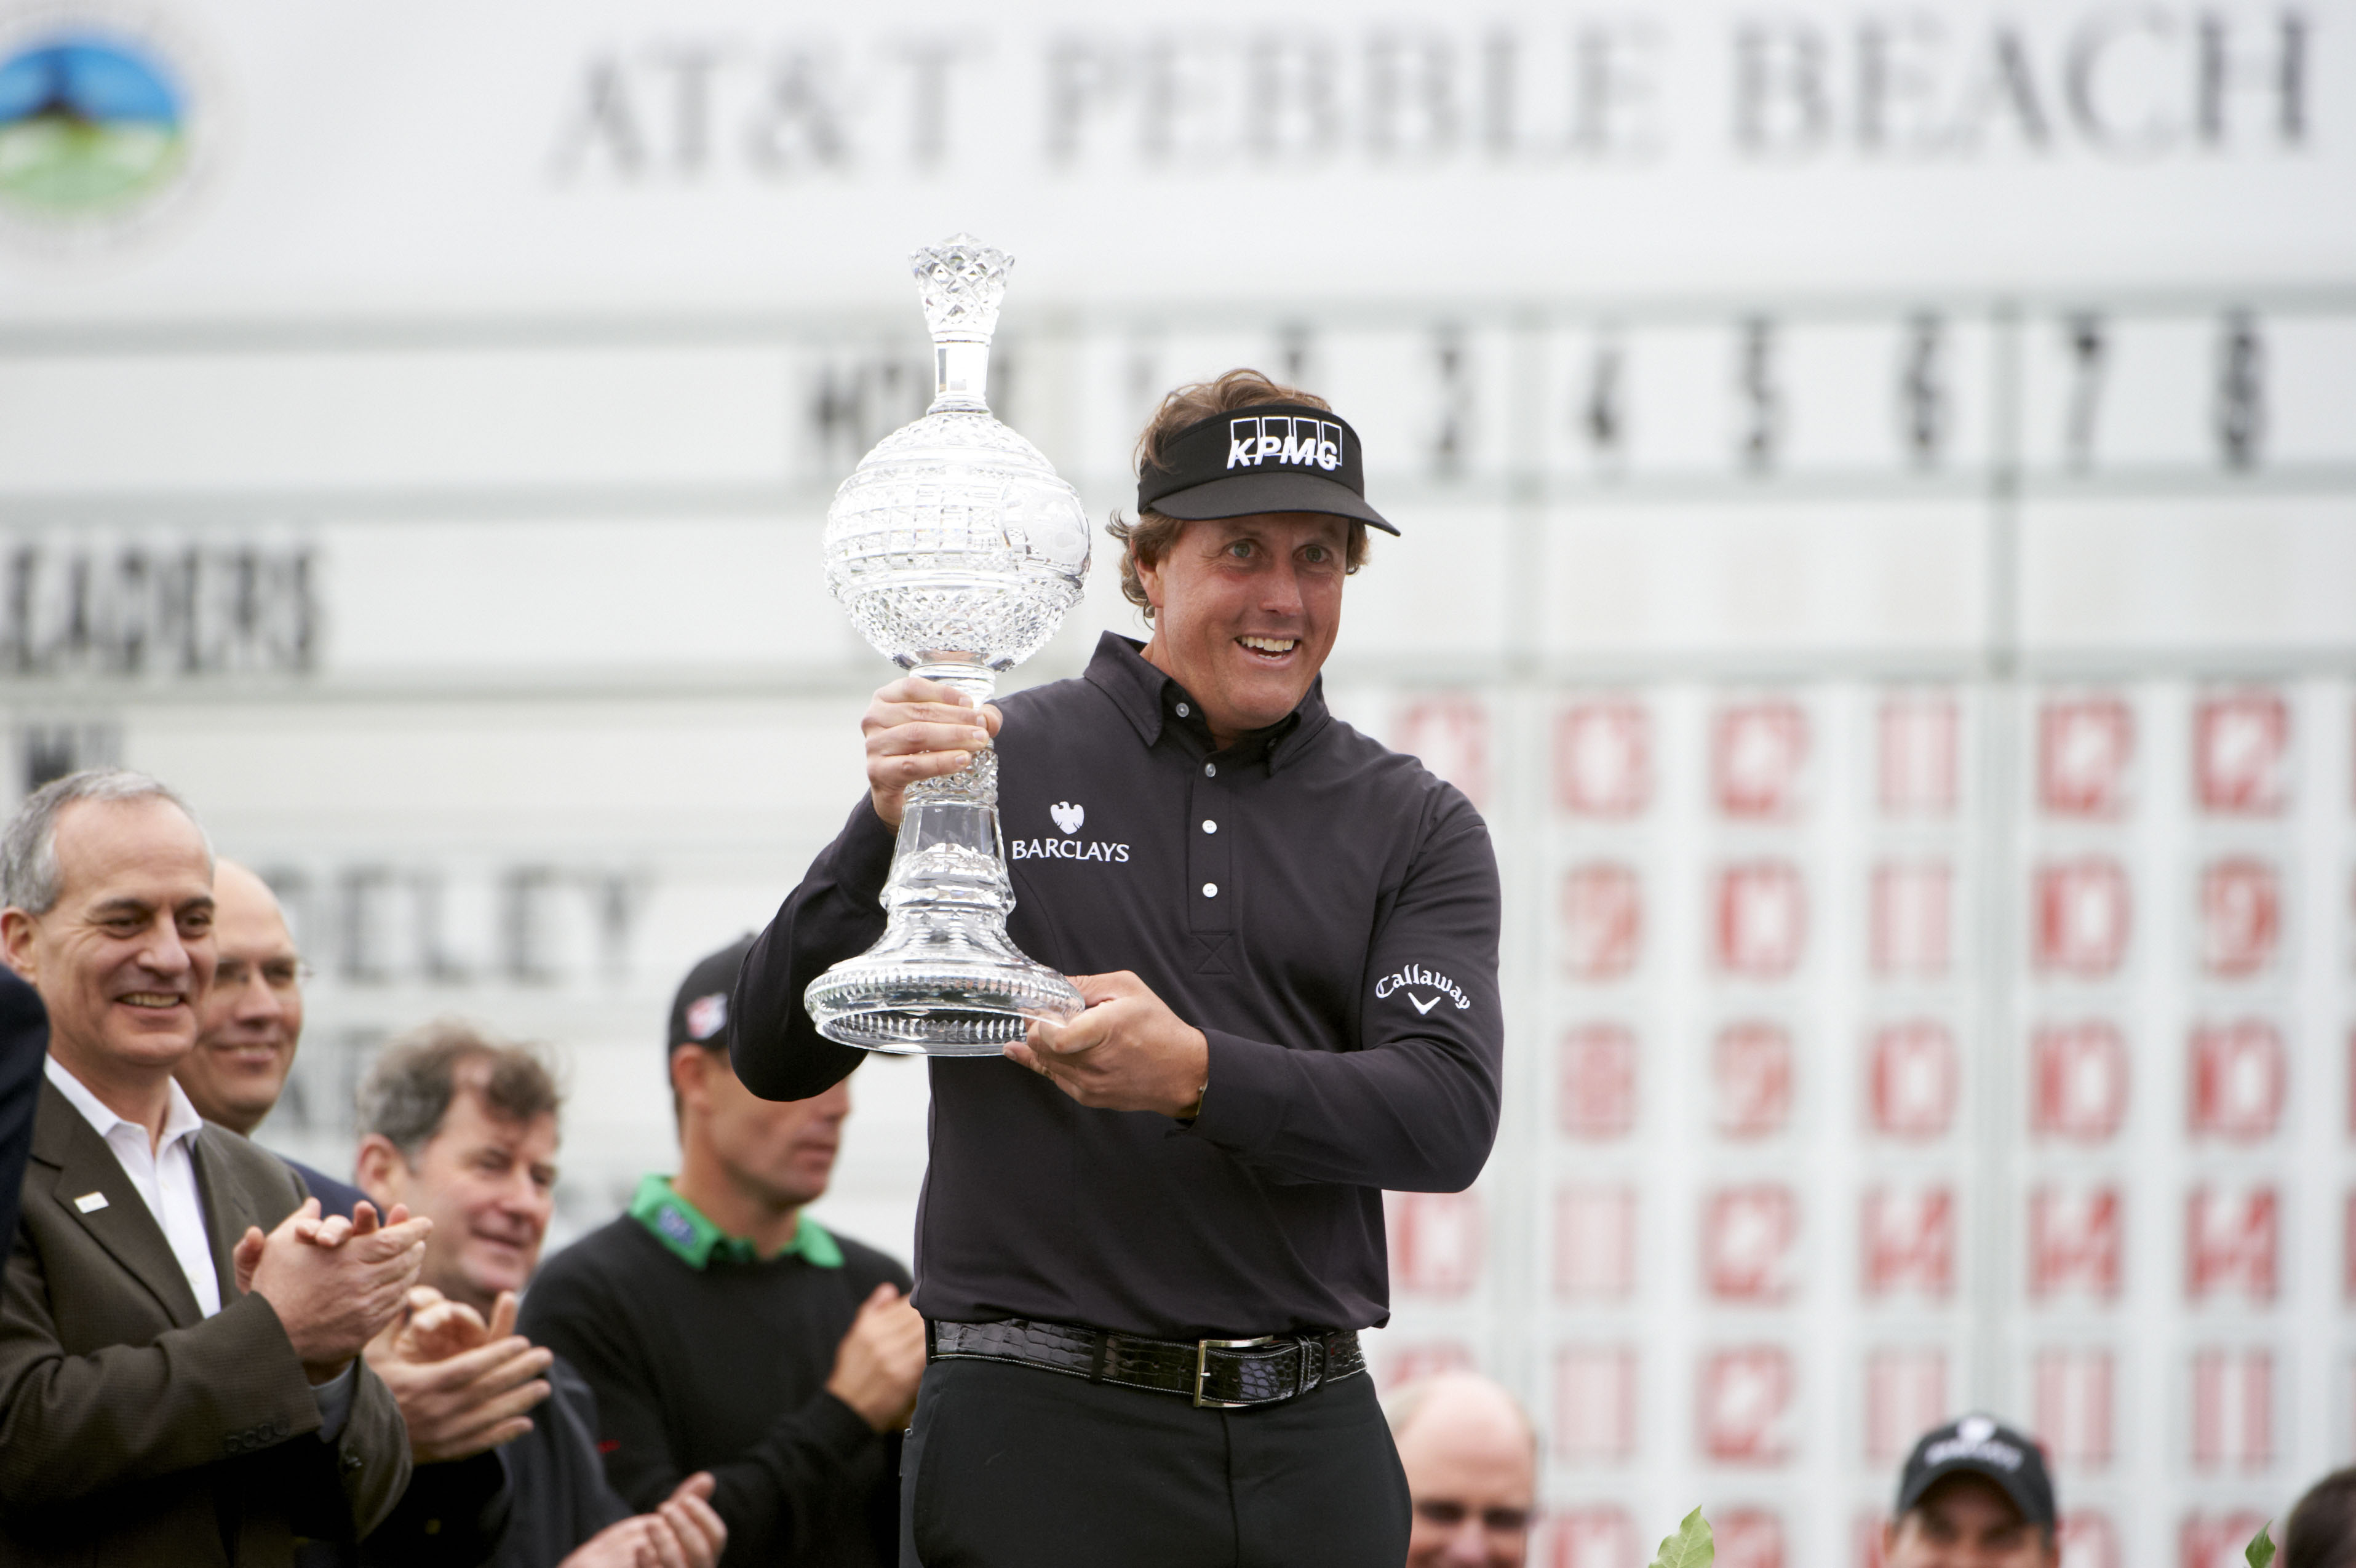 8. 2012: Phil completes the Pebble Slam